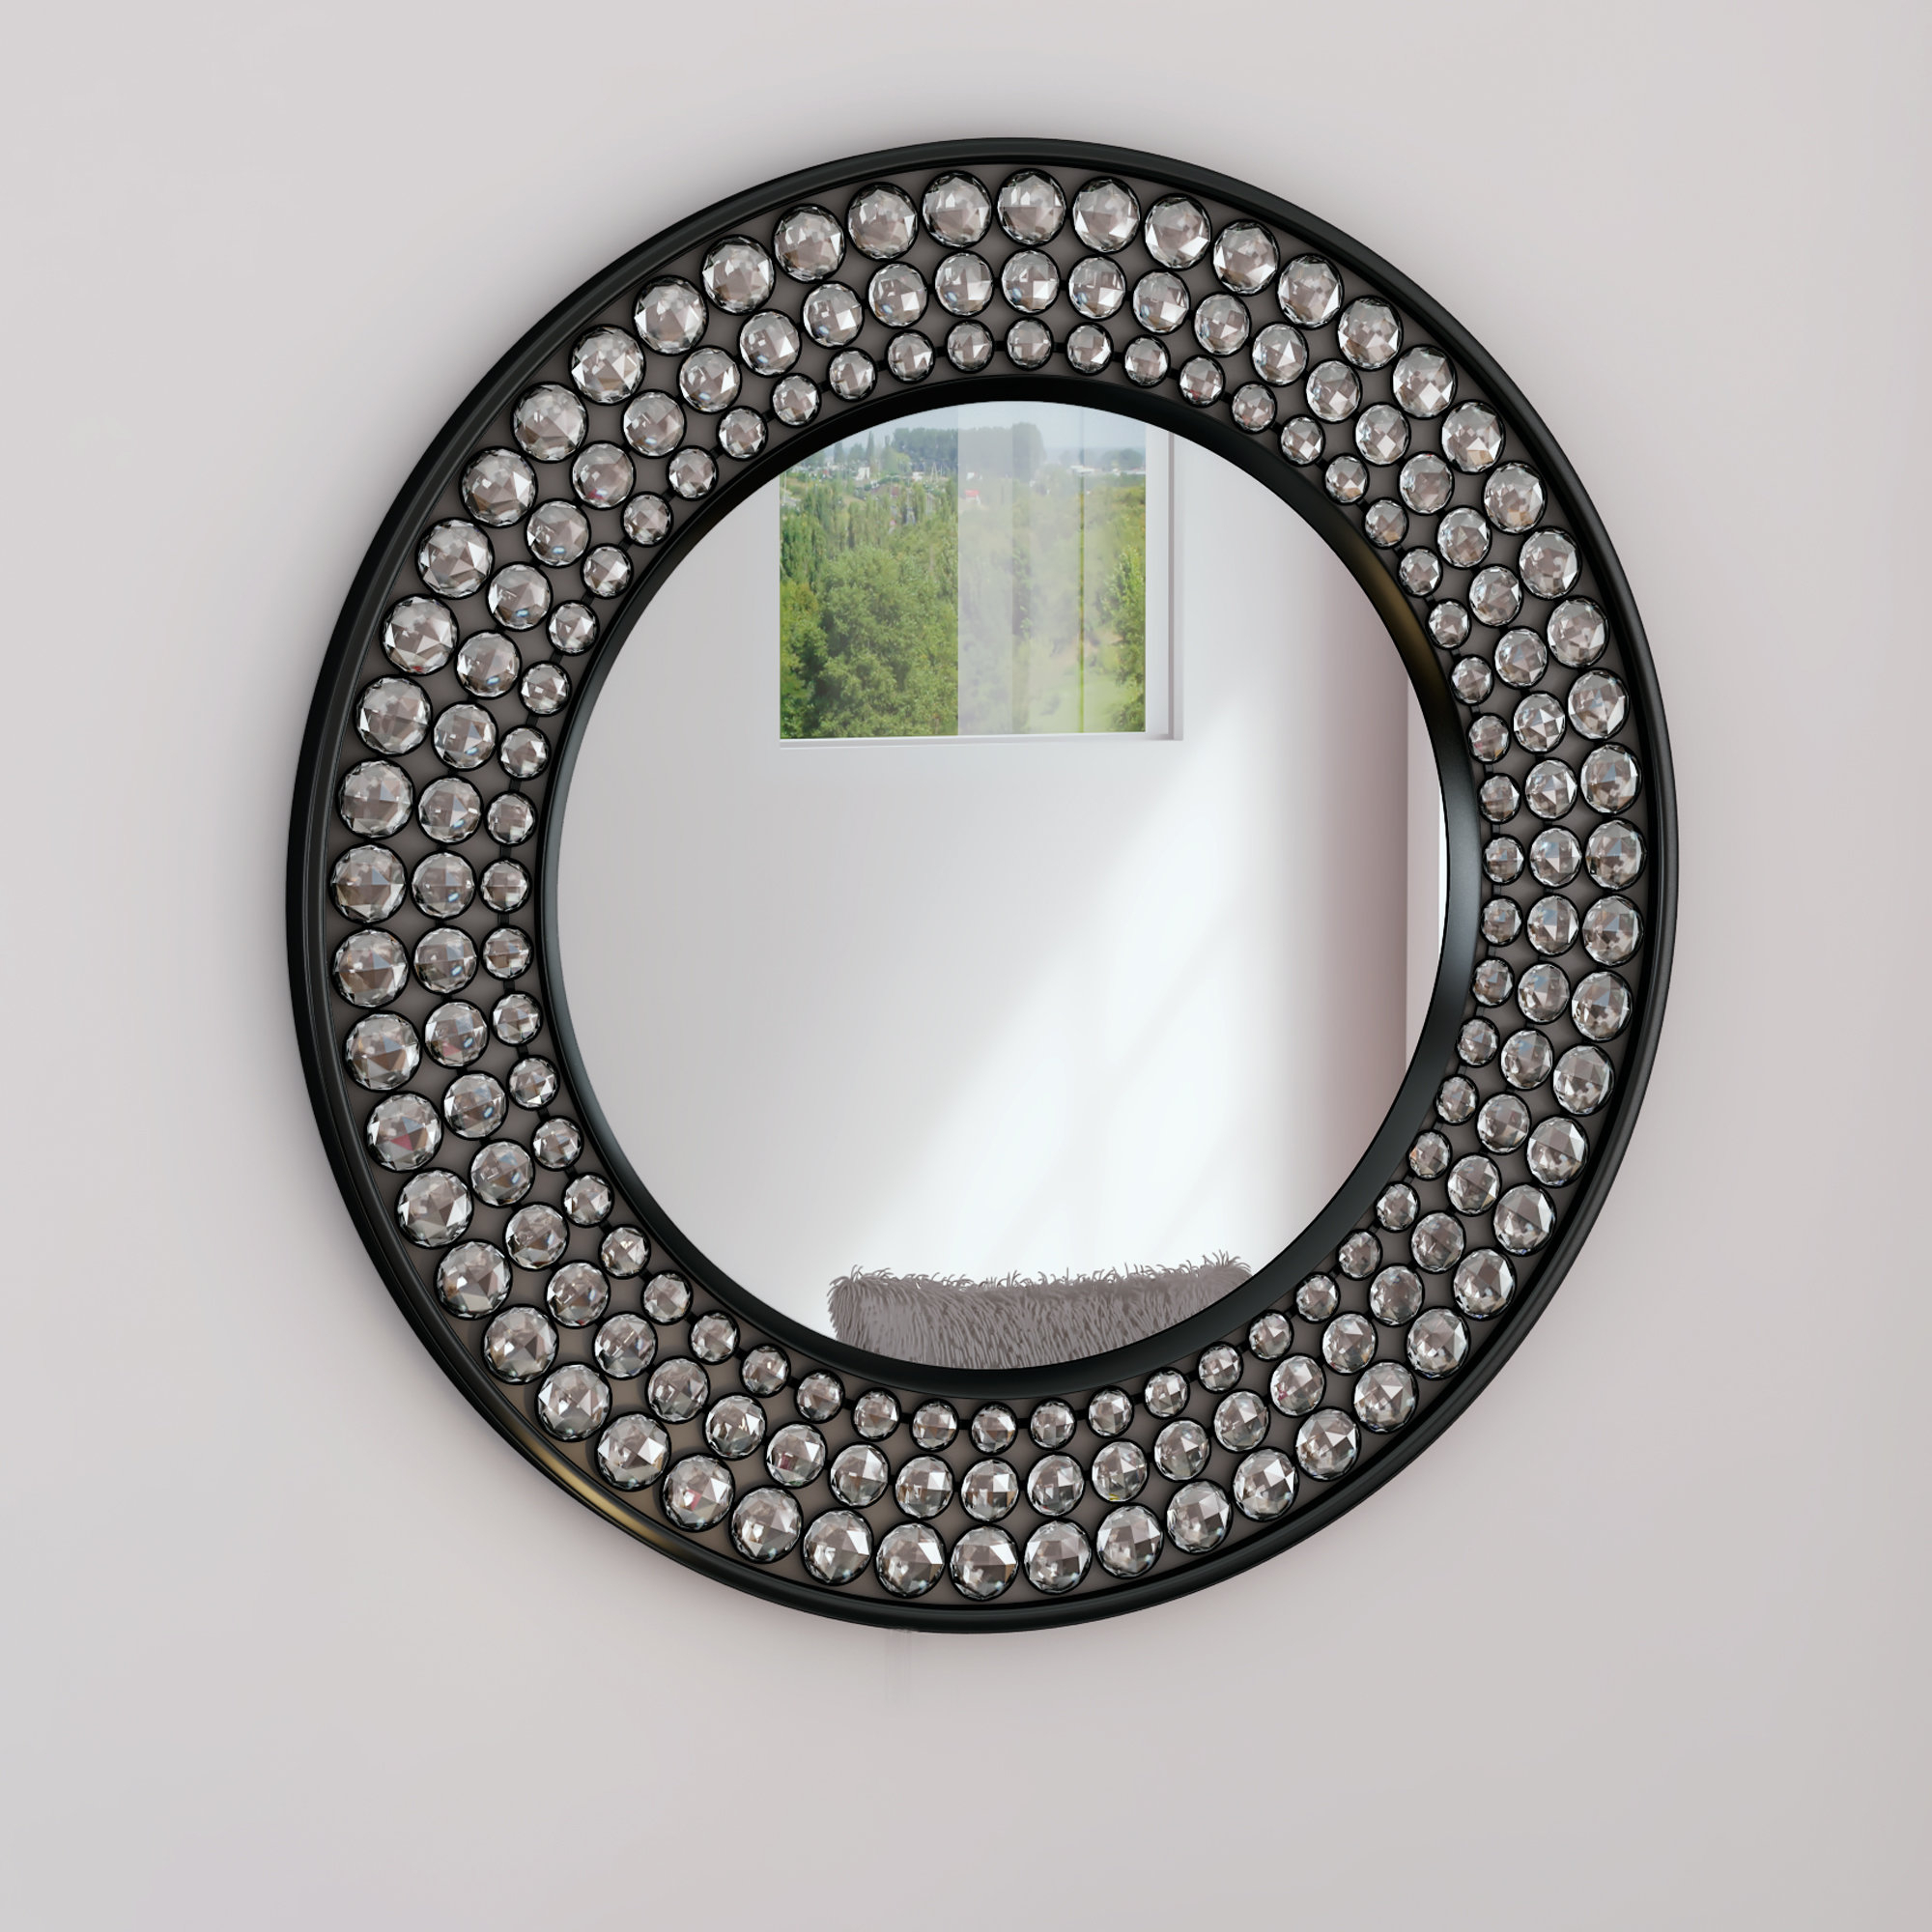 Valerian Jeweled Round Wall Mirror In Karn Vertical Round Resin Wall Mirrors (View 6 of 20)